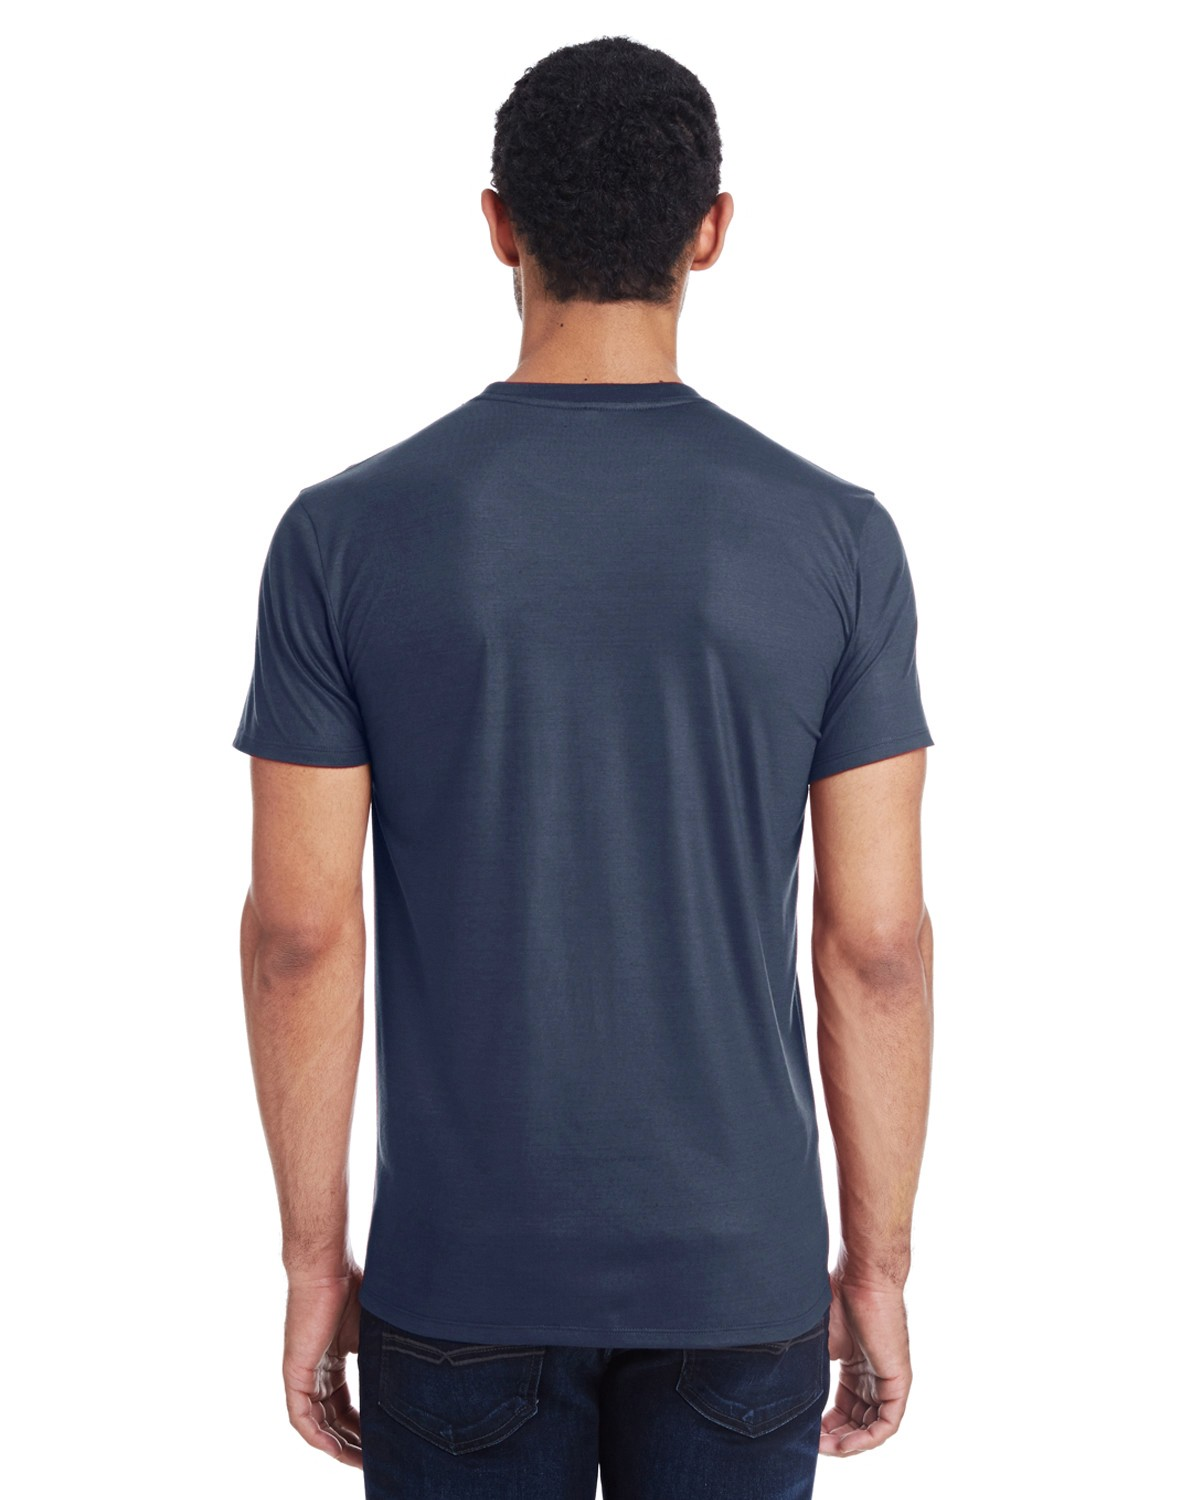 140A Threadfast Apparel LIQUID NAVY